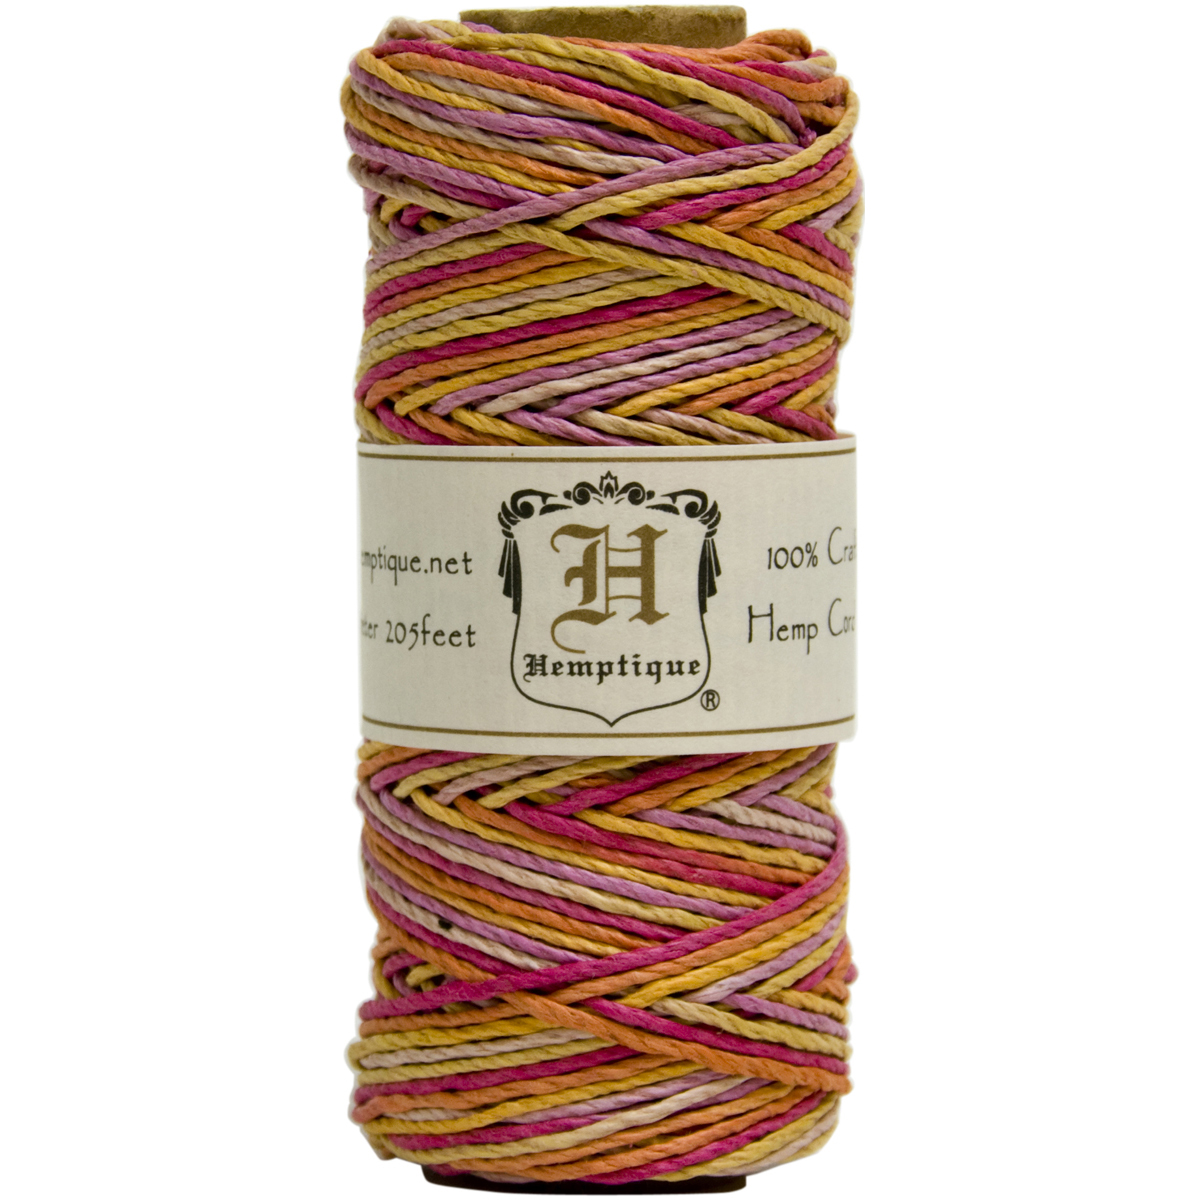 Hemptique Hemp Cord Spool Variegated 20#